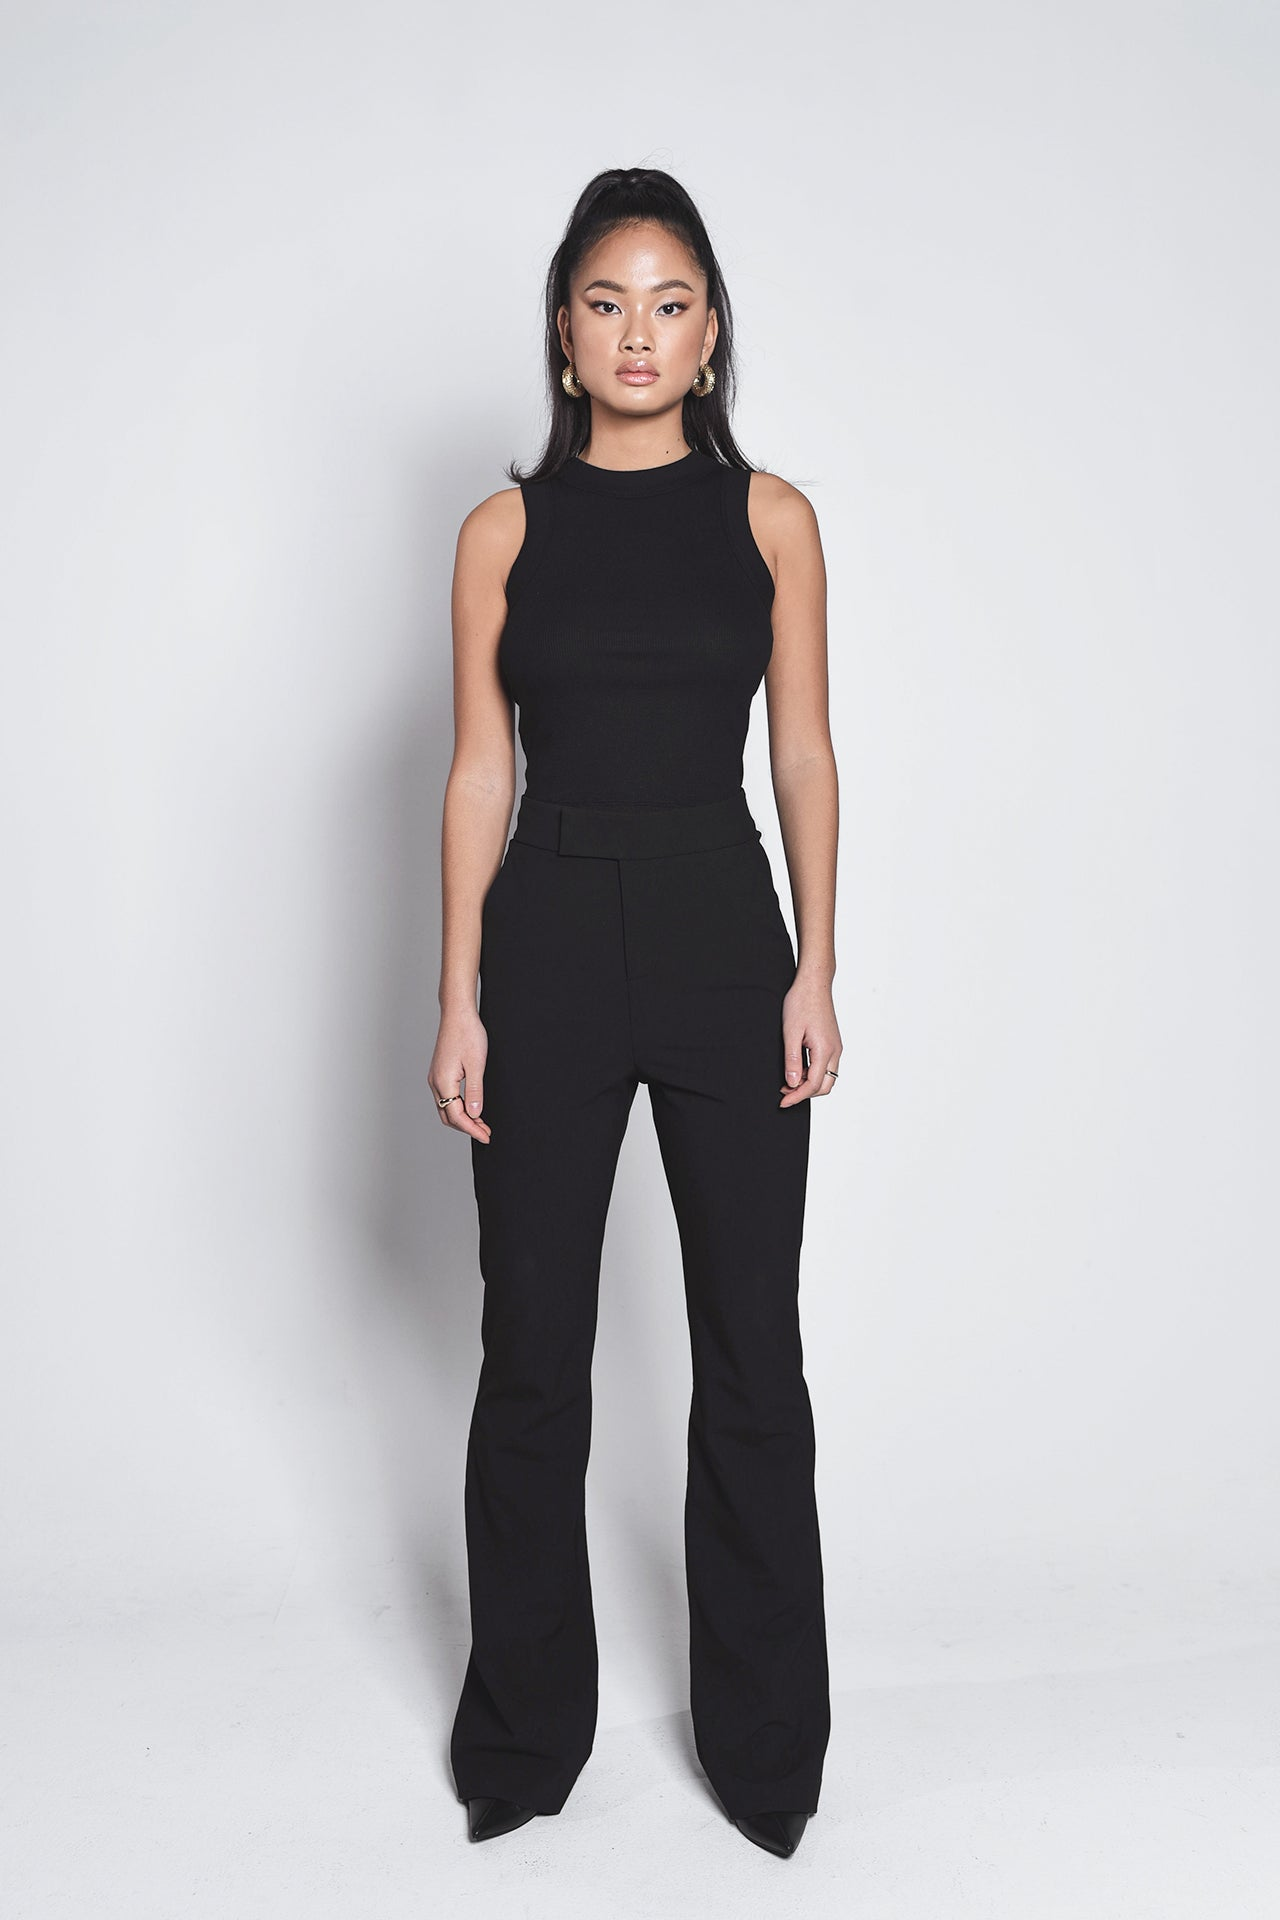 LONG SUIT PANTS - black